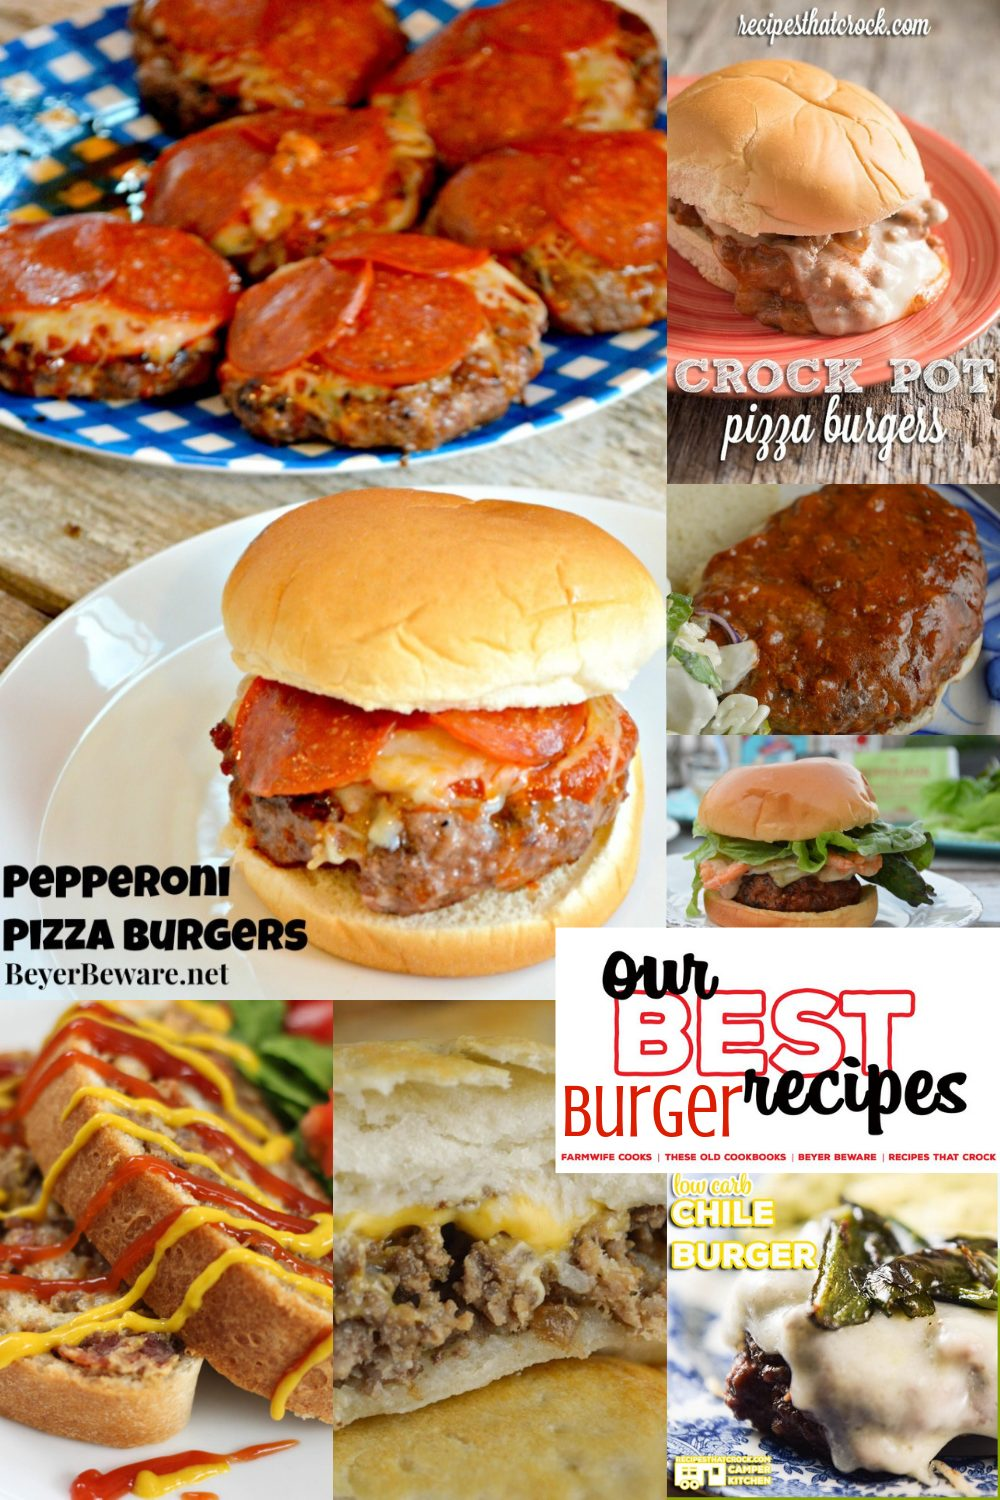 Our Best Burger Recipes - If you are obsessed with everything grilled burger, cheeseburger, or burger-themed, this edition of our best recipes is going to knock your socks off. #Burgers #Cheeseburgers #Casseroles #EasyRecipes #DinnerIdeas #OurBestRecipes